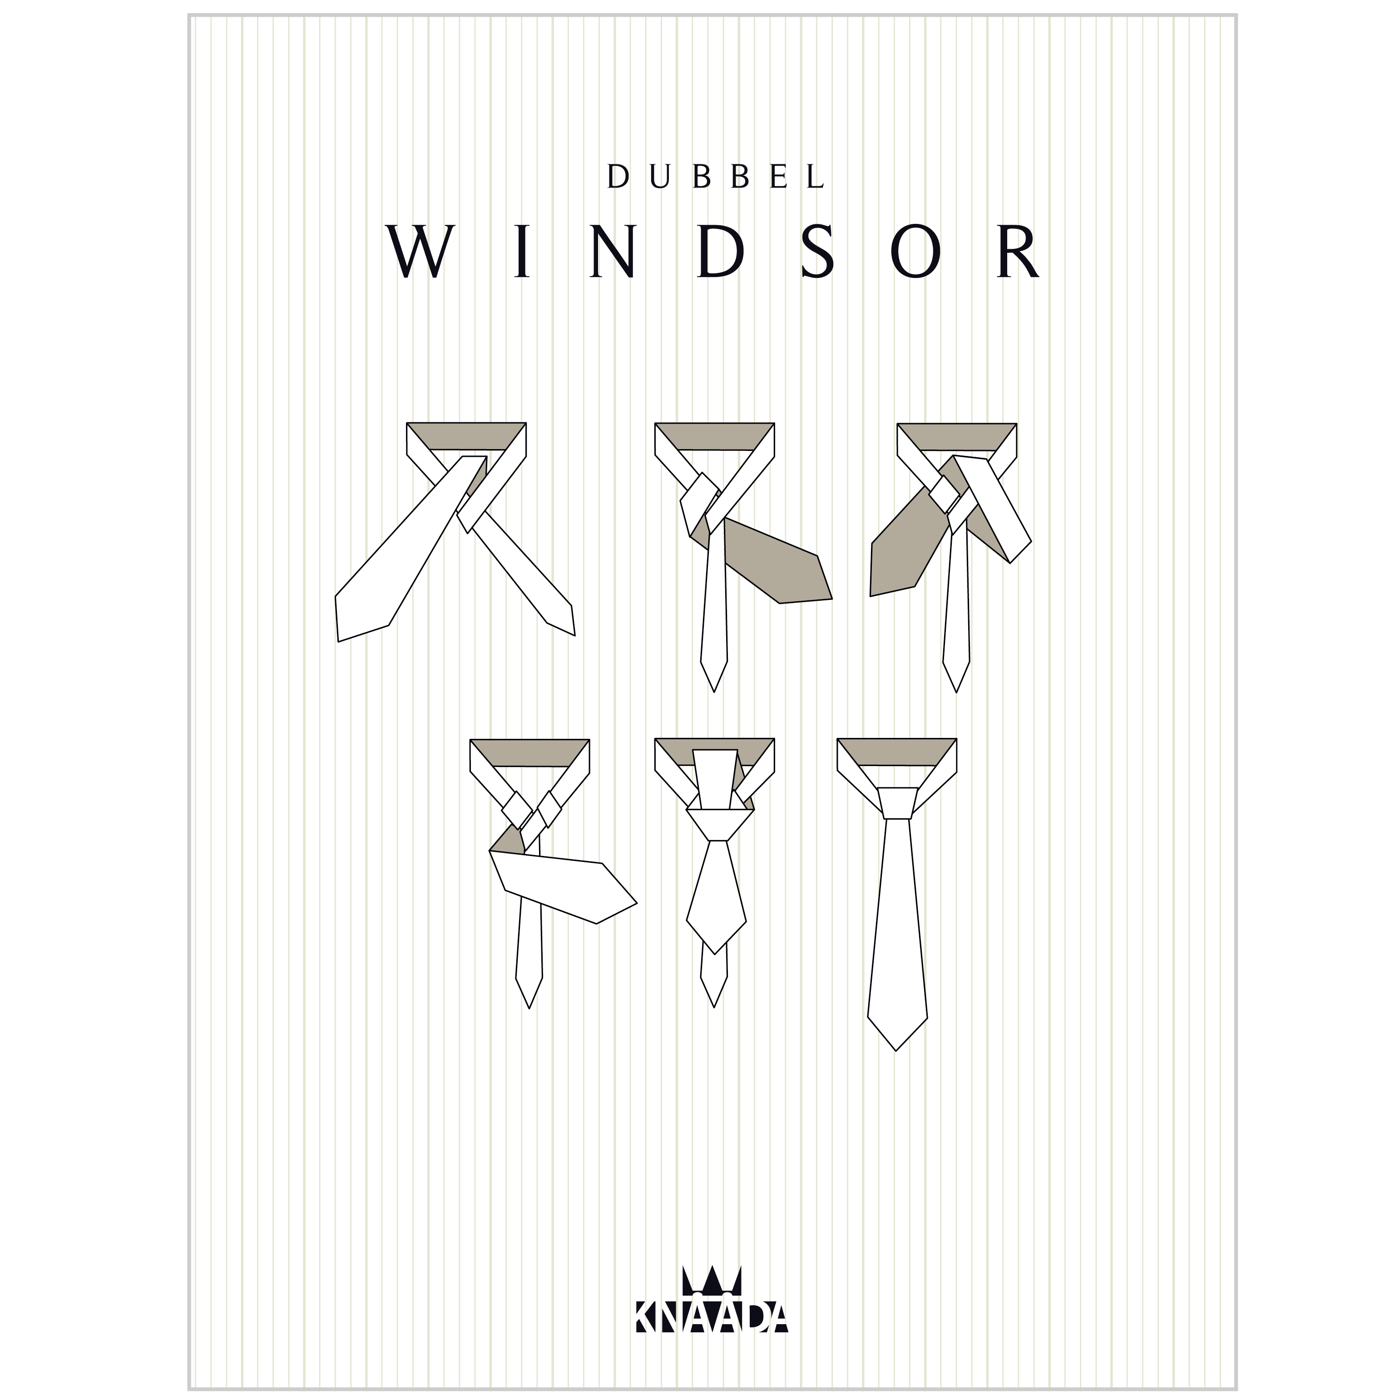 Instruktion Dubbel Windsor